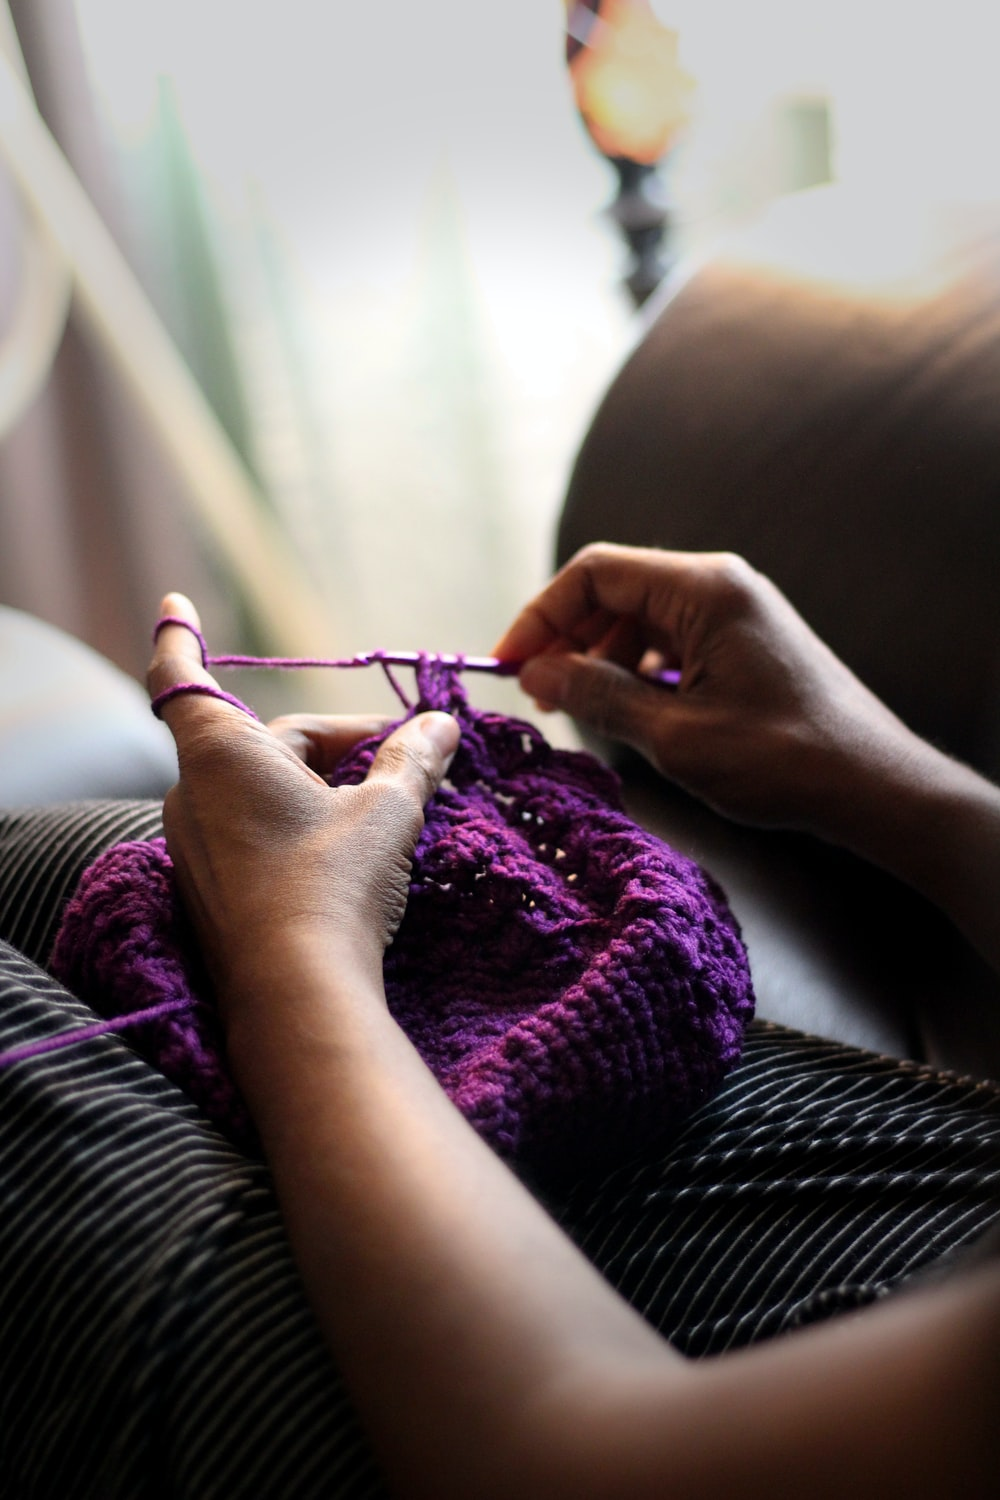 woman sewing purple textile